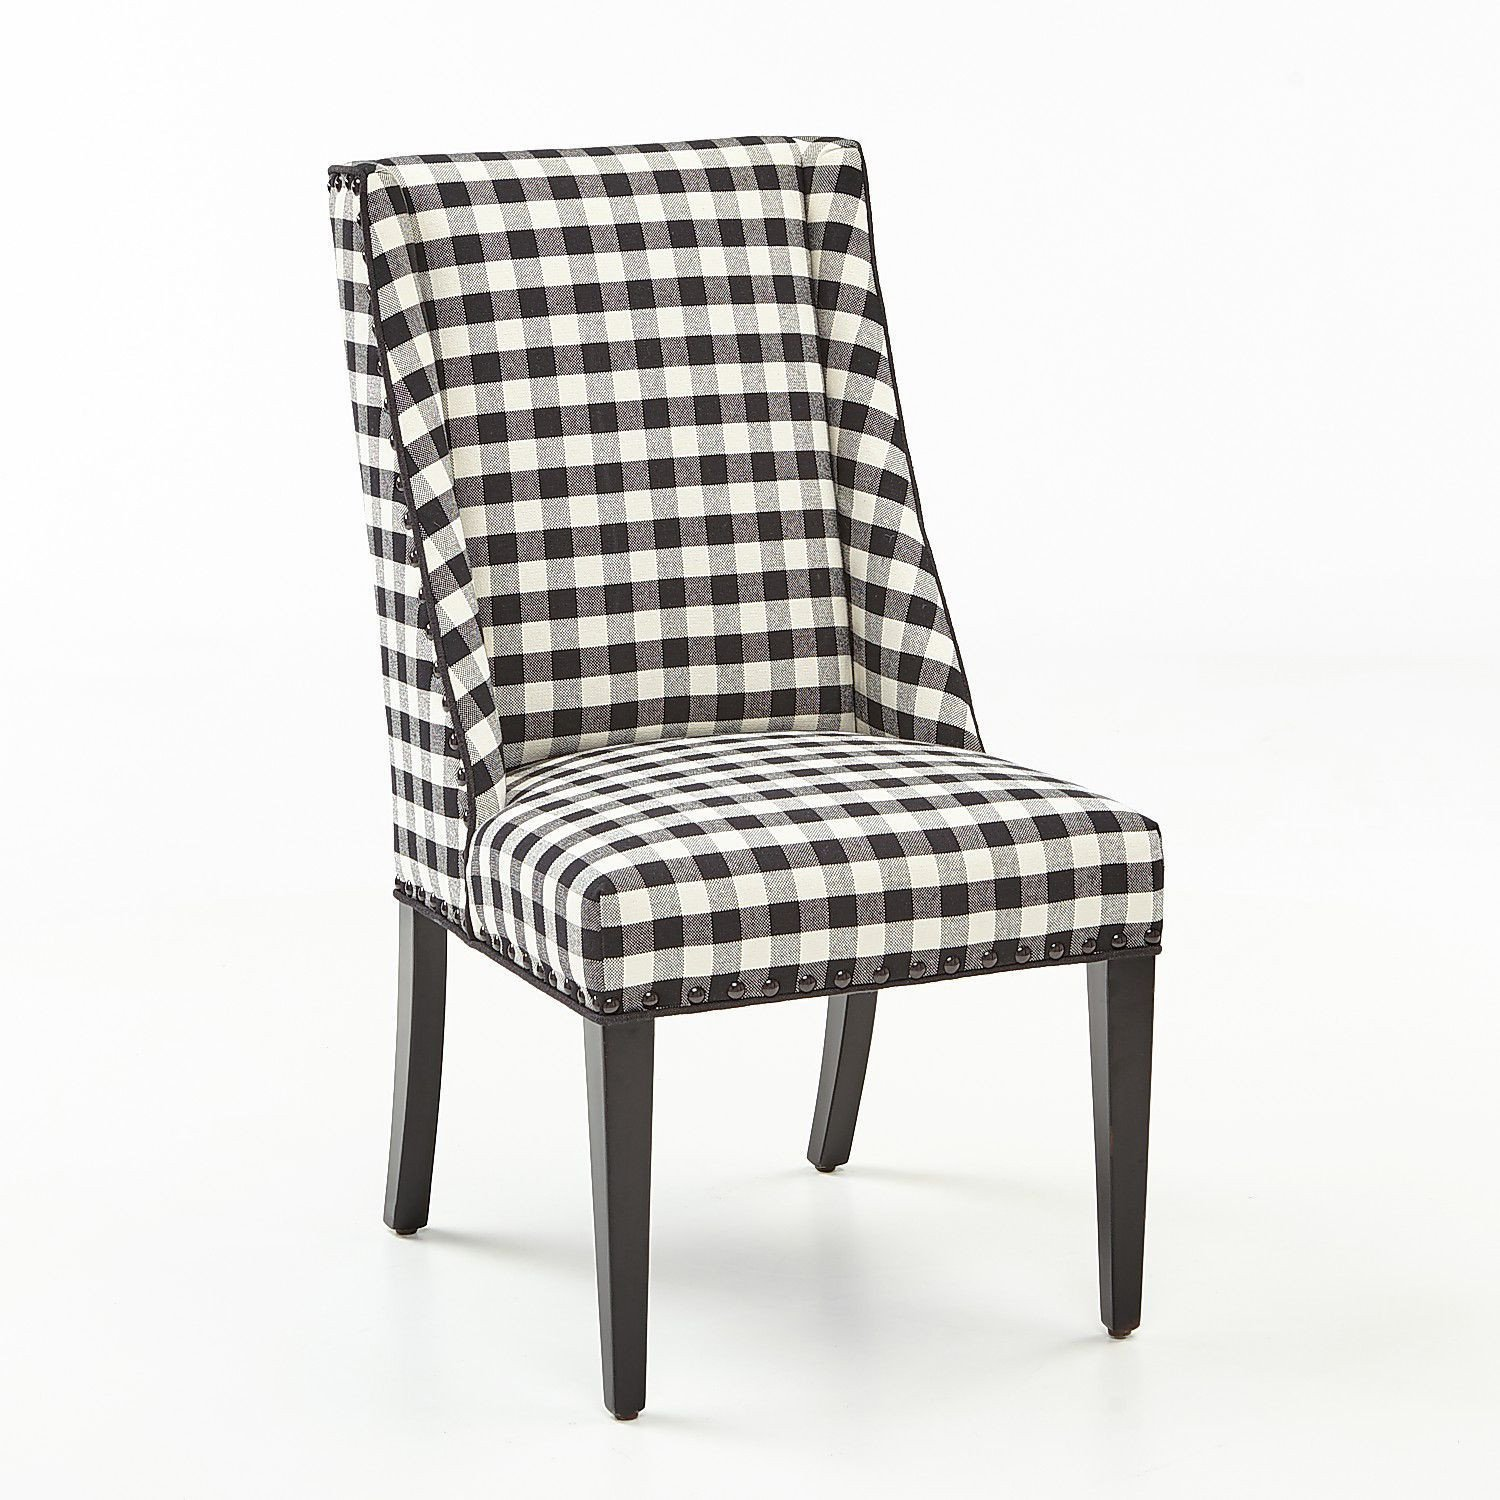 White Chair for Bedroom Elegant Owen Black & White Buffalo Check Dining Chair with Black